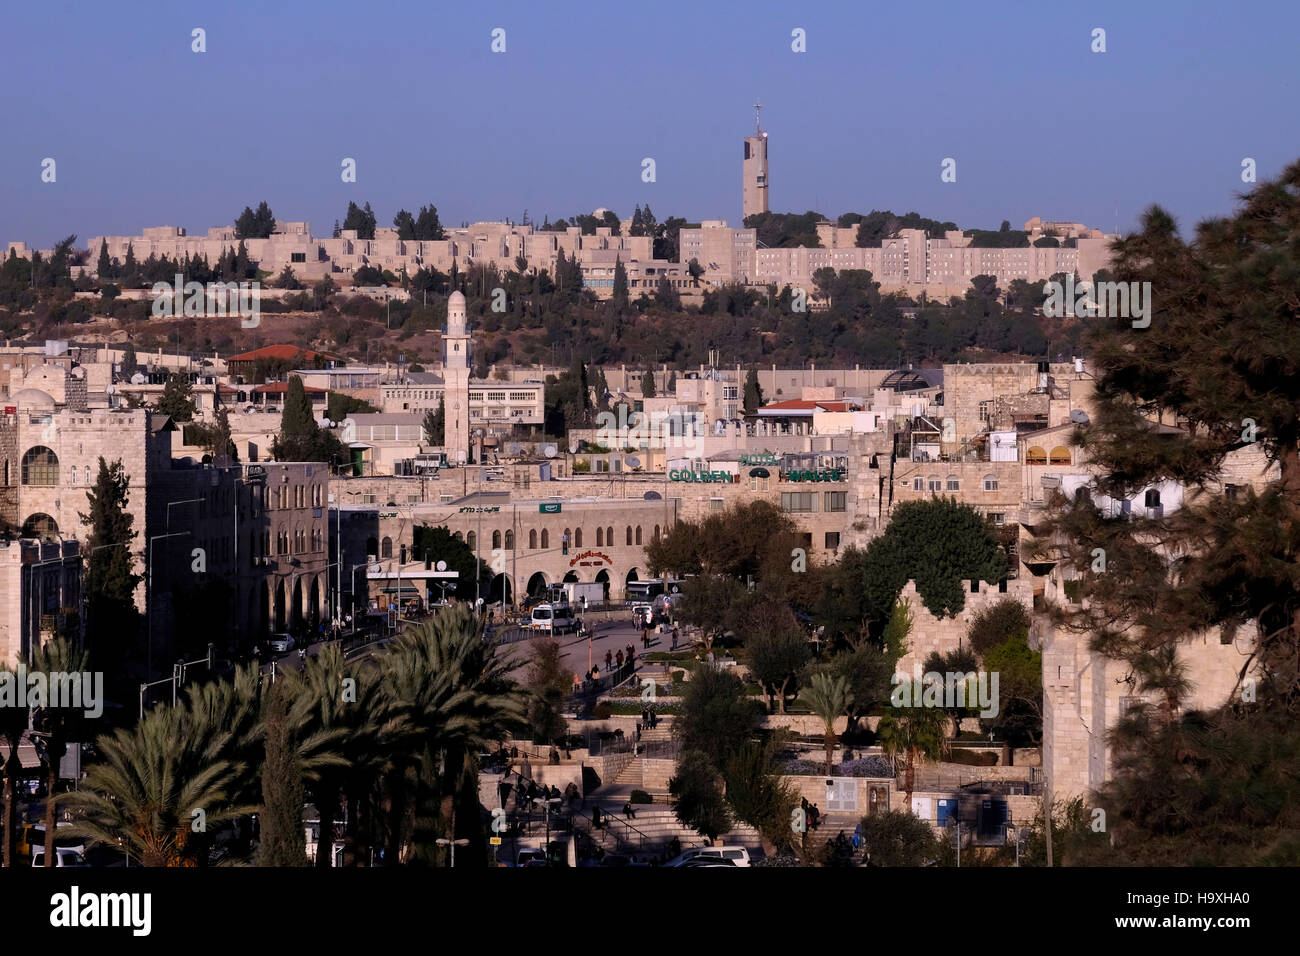 View of The Hebrew University on Mount Scopus across Sultan Suleiman street outside the old city walls in East Jerusalem - Stock Image